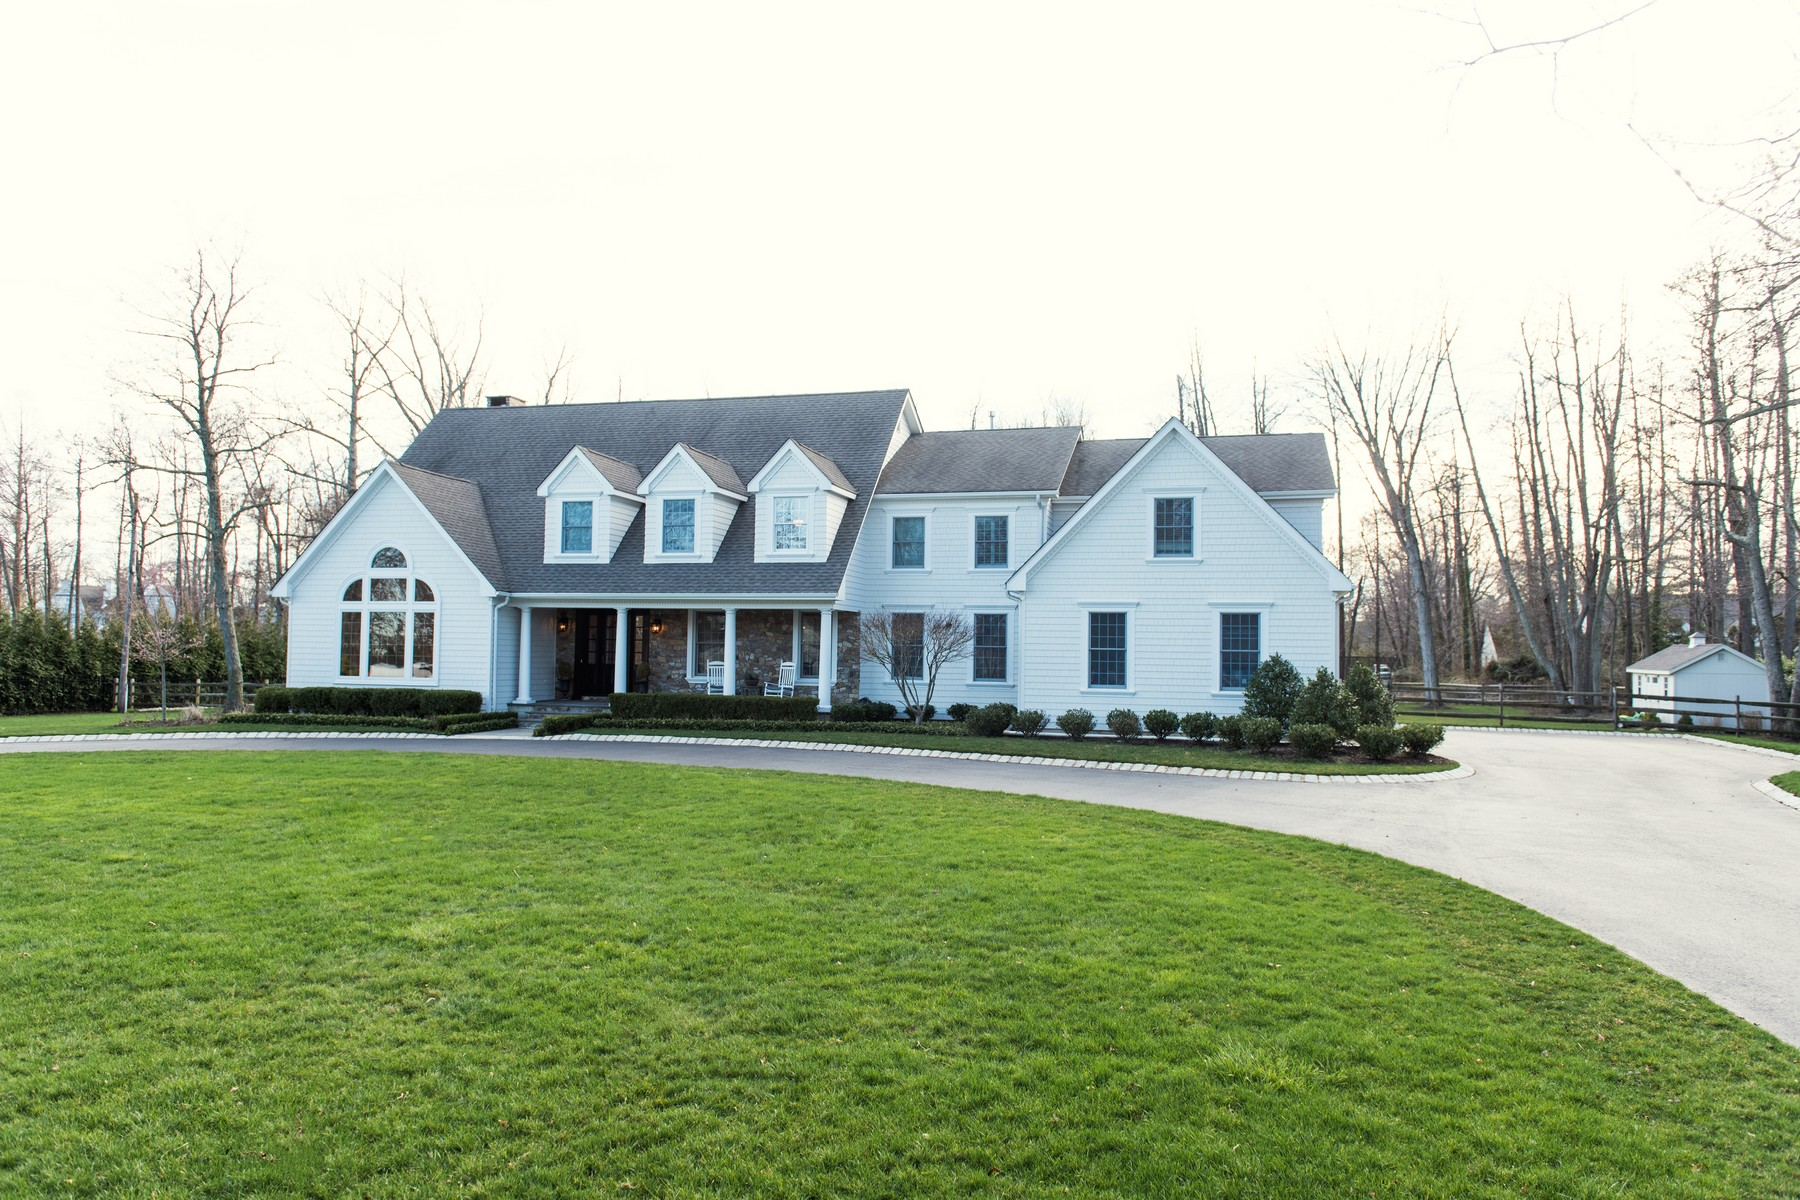 Single Family Home for Sale at Captivating Custom Home 10 Heathcliff Rd Rumson, New Jersey, 07760 United States